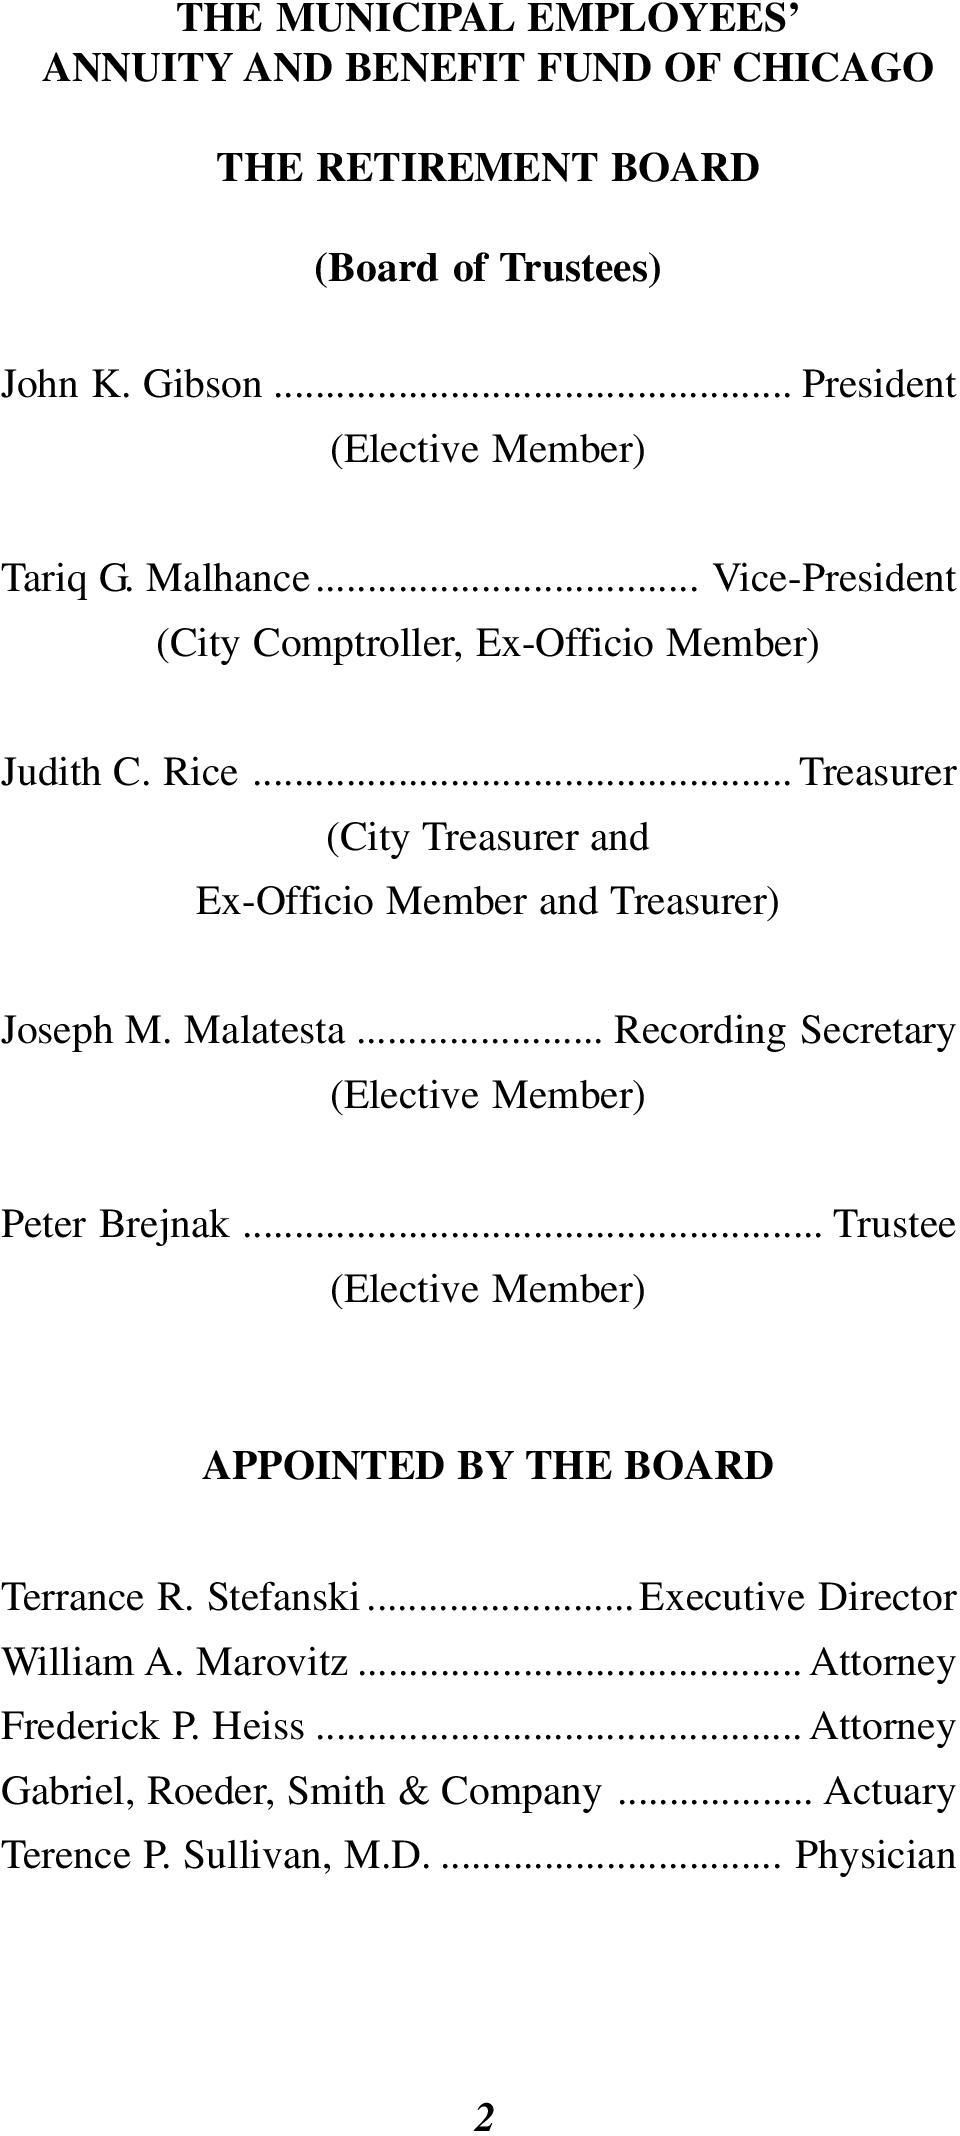 Malatesta... Recording Secretary (Elective Member) Peter Brejnak... Trustee (Elective Member) APPOINTED BY THE BOARD Terrance R. Stefanski.